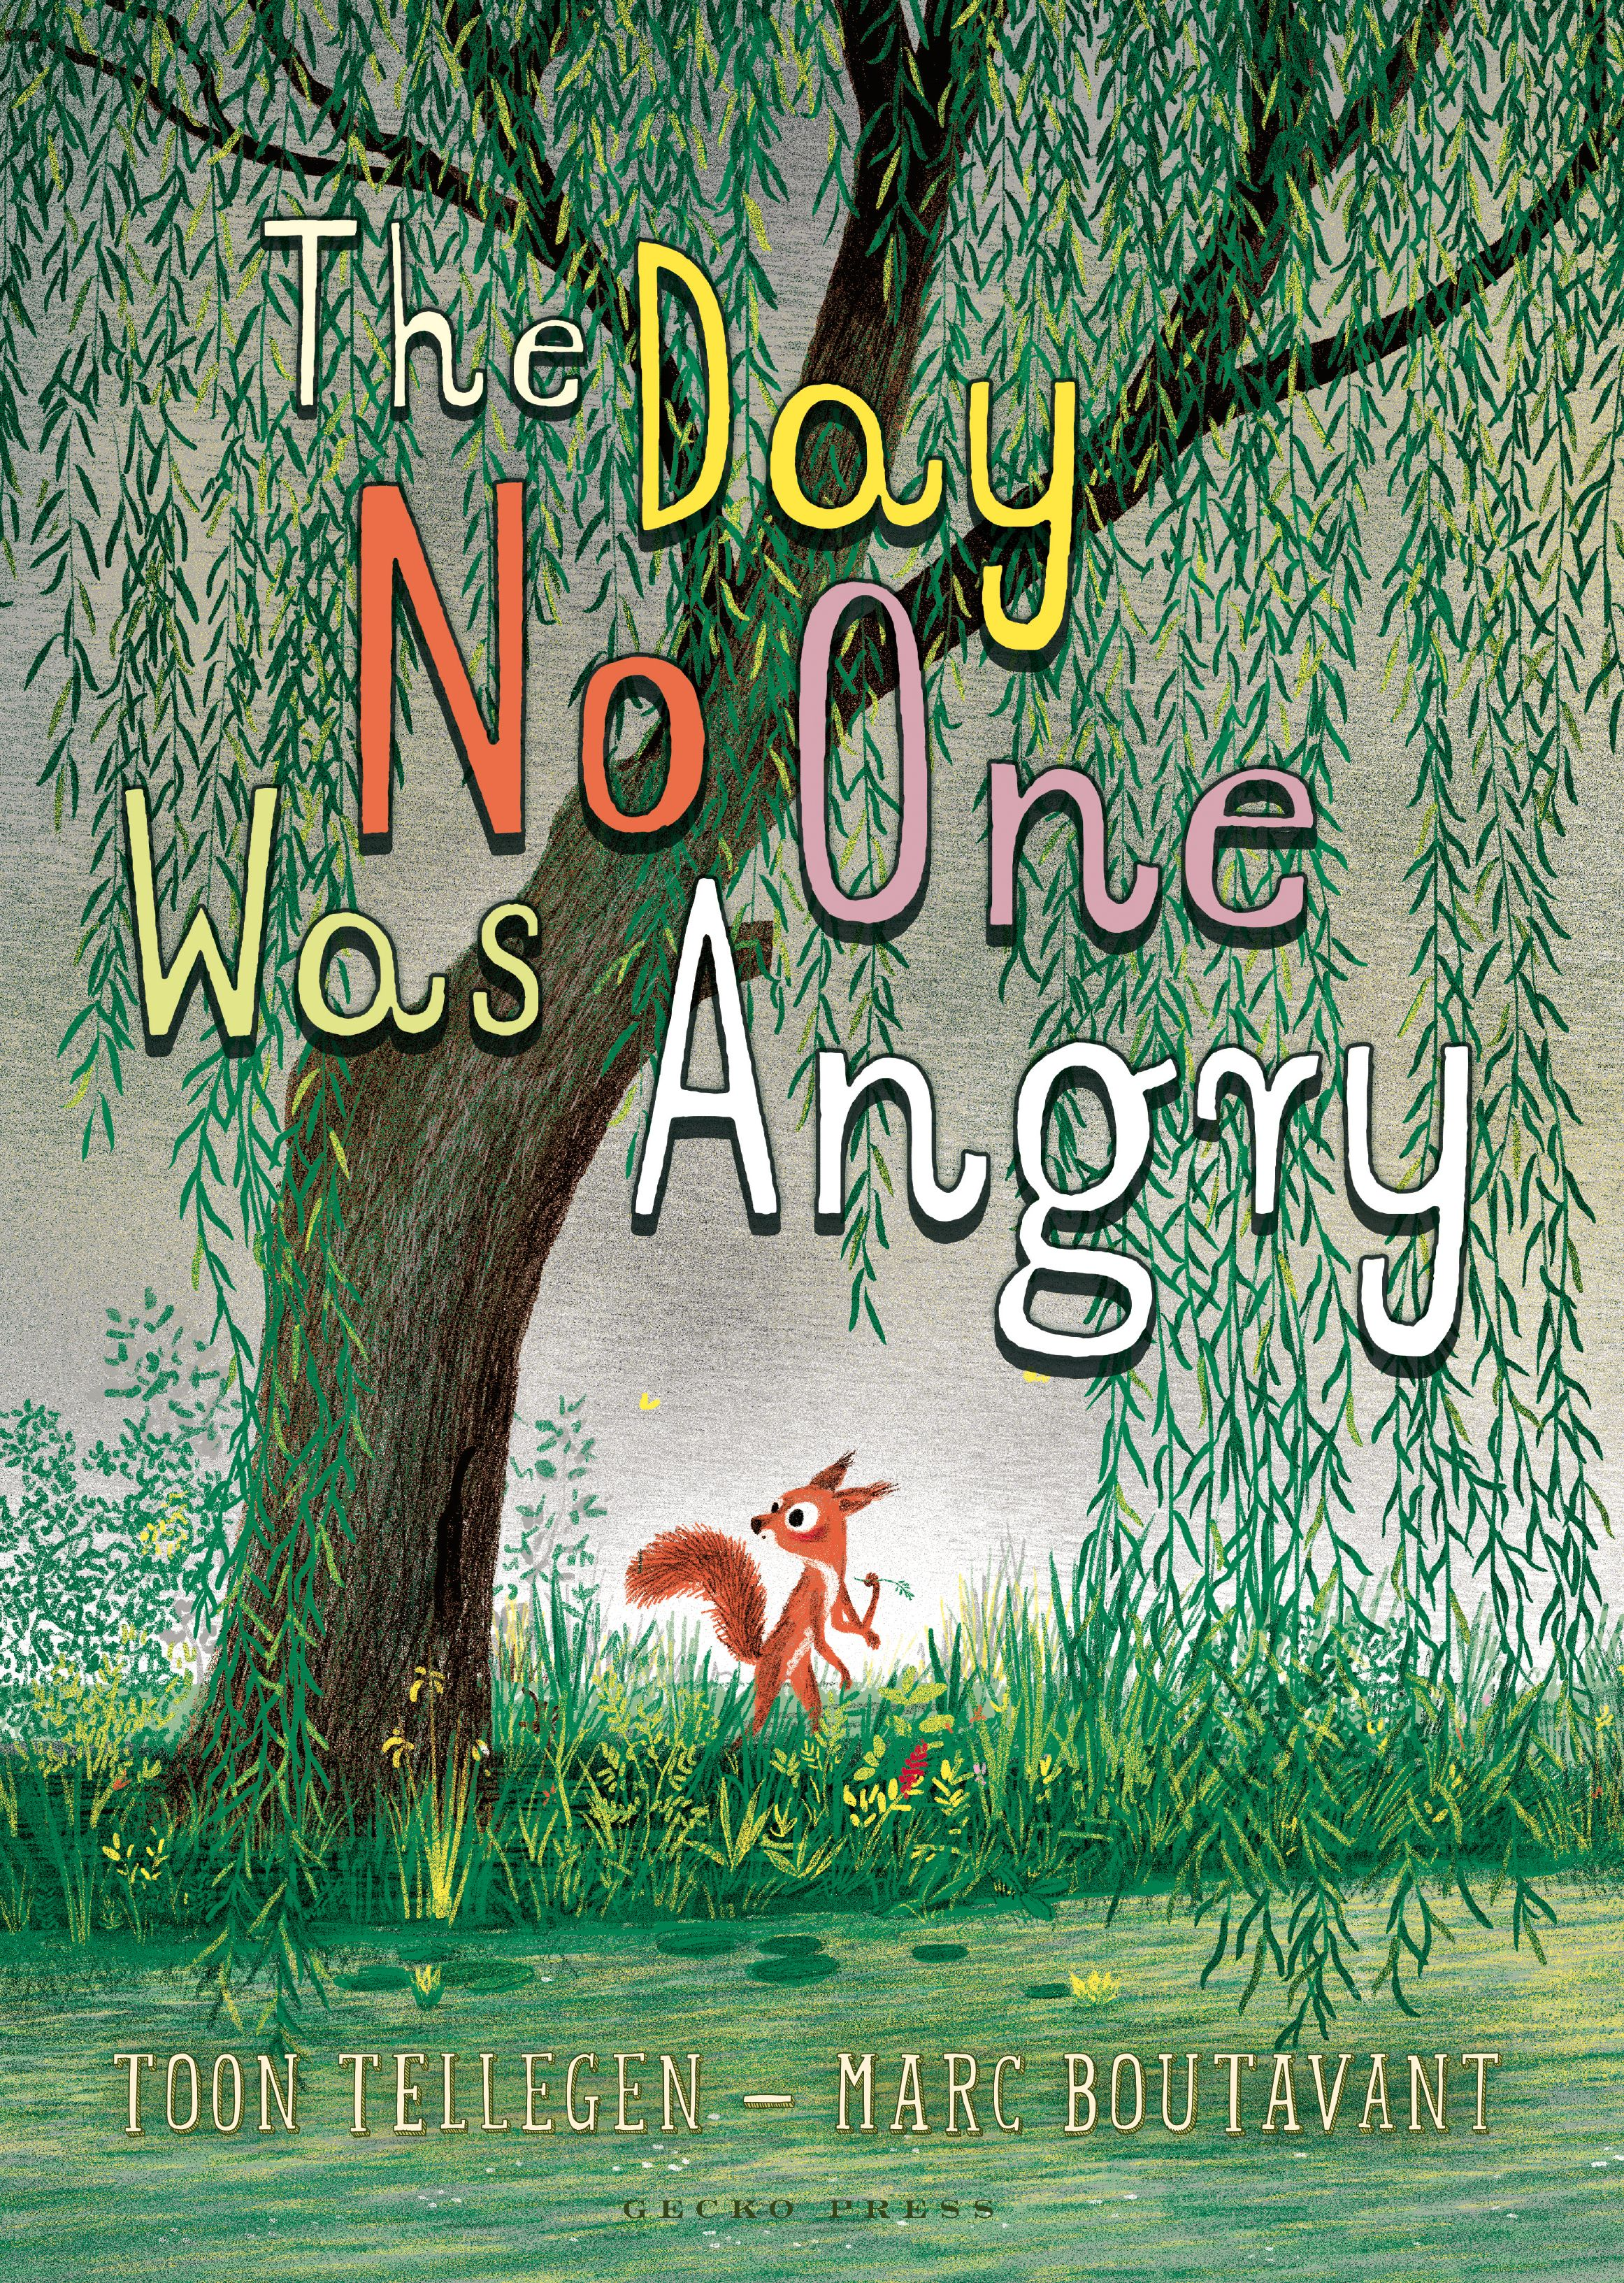 marc boutavant https://booksellersnz.files.wordpress.com/2014/11/cv_the_day_no_one_was_angry.jpg